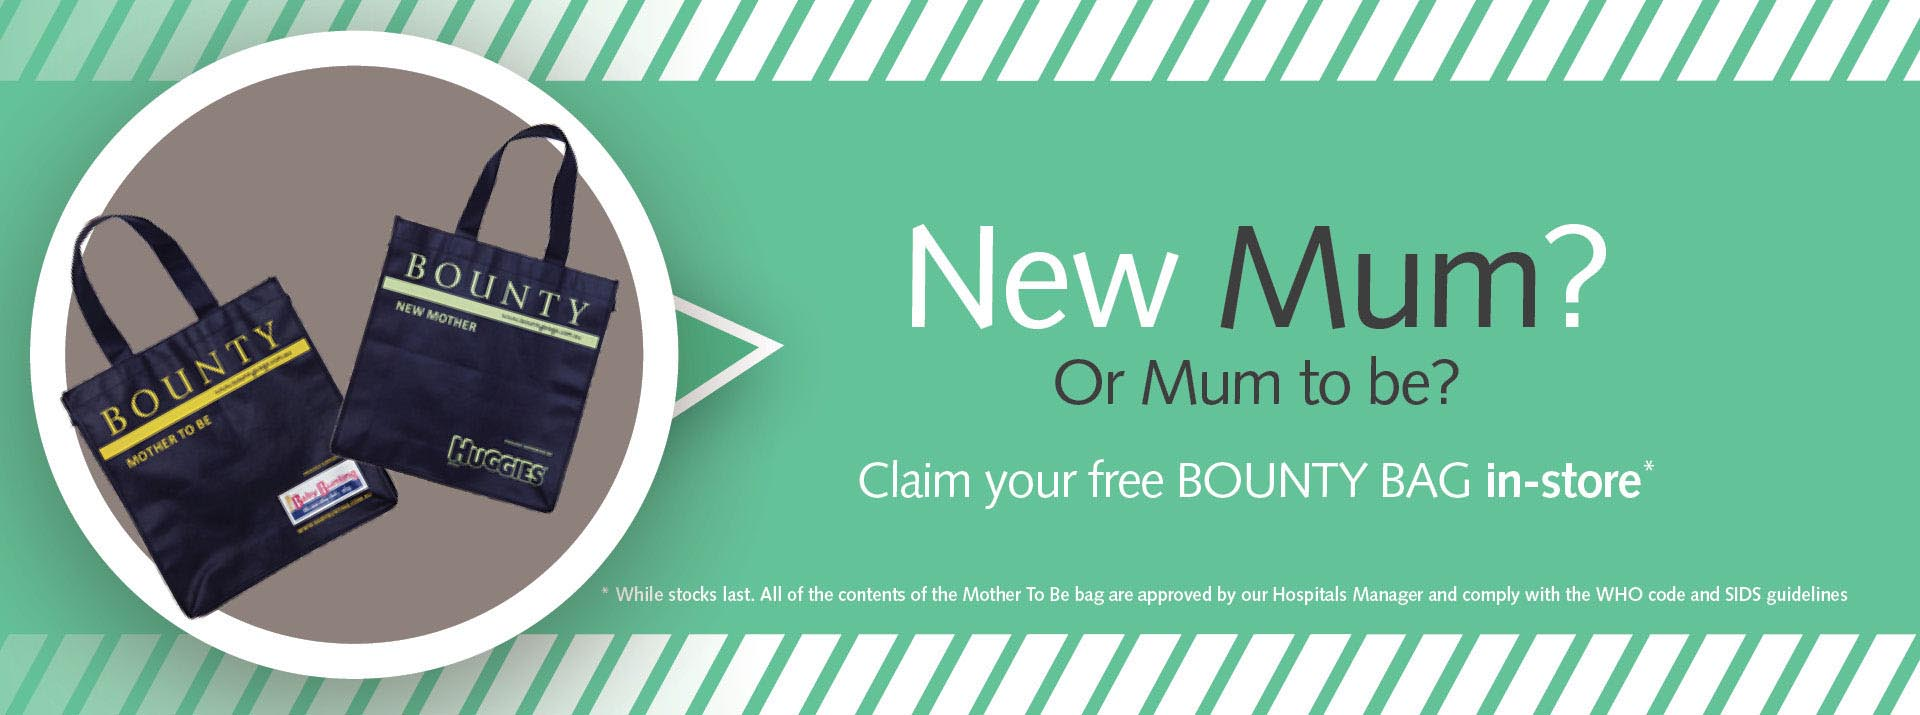 New Mother - Soon to be Mother - Claim Free Bounty Bag